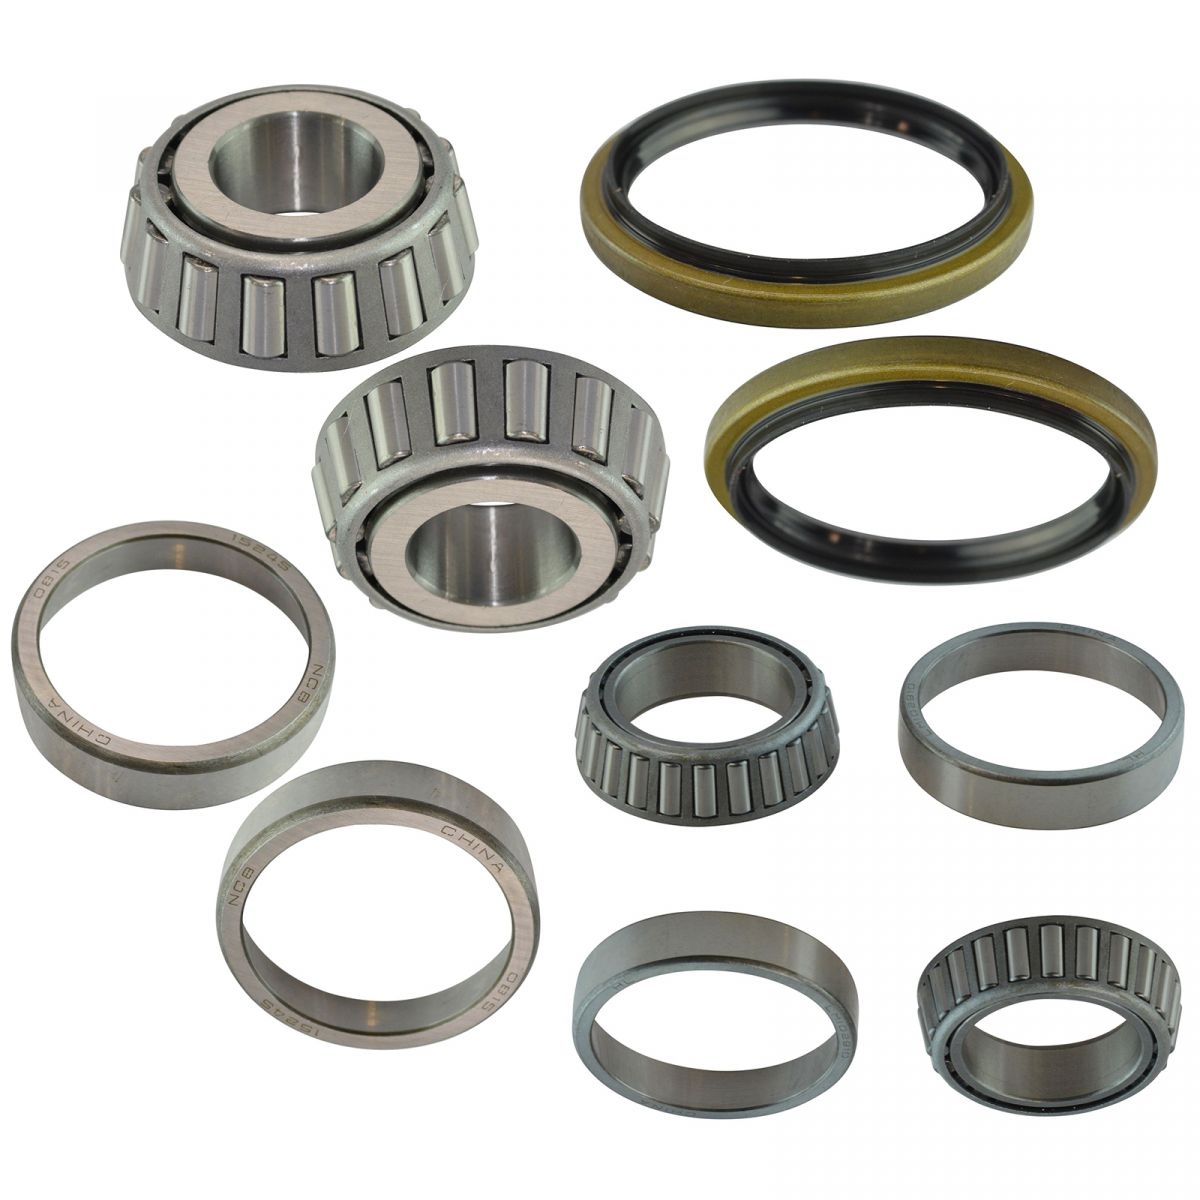 6 Piece Inner /& Outer Wheel Bearing Race w//Seal Kit LH /& RH Sides for Toyota